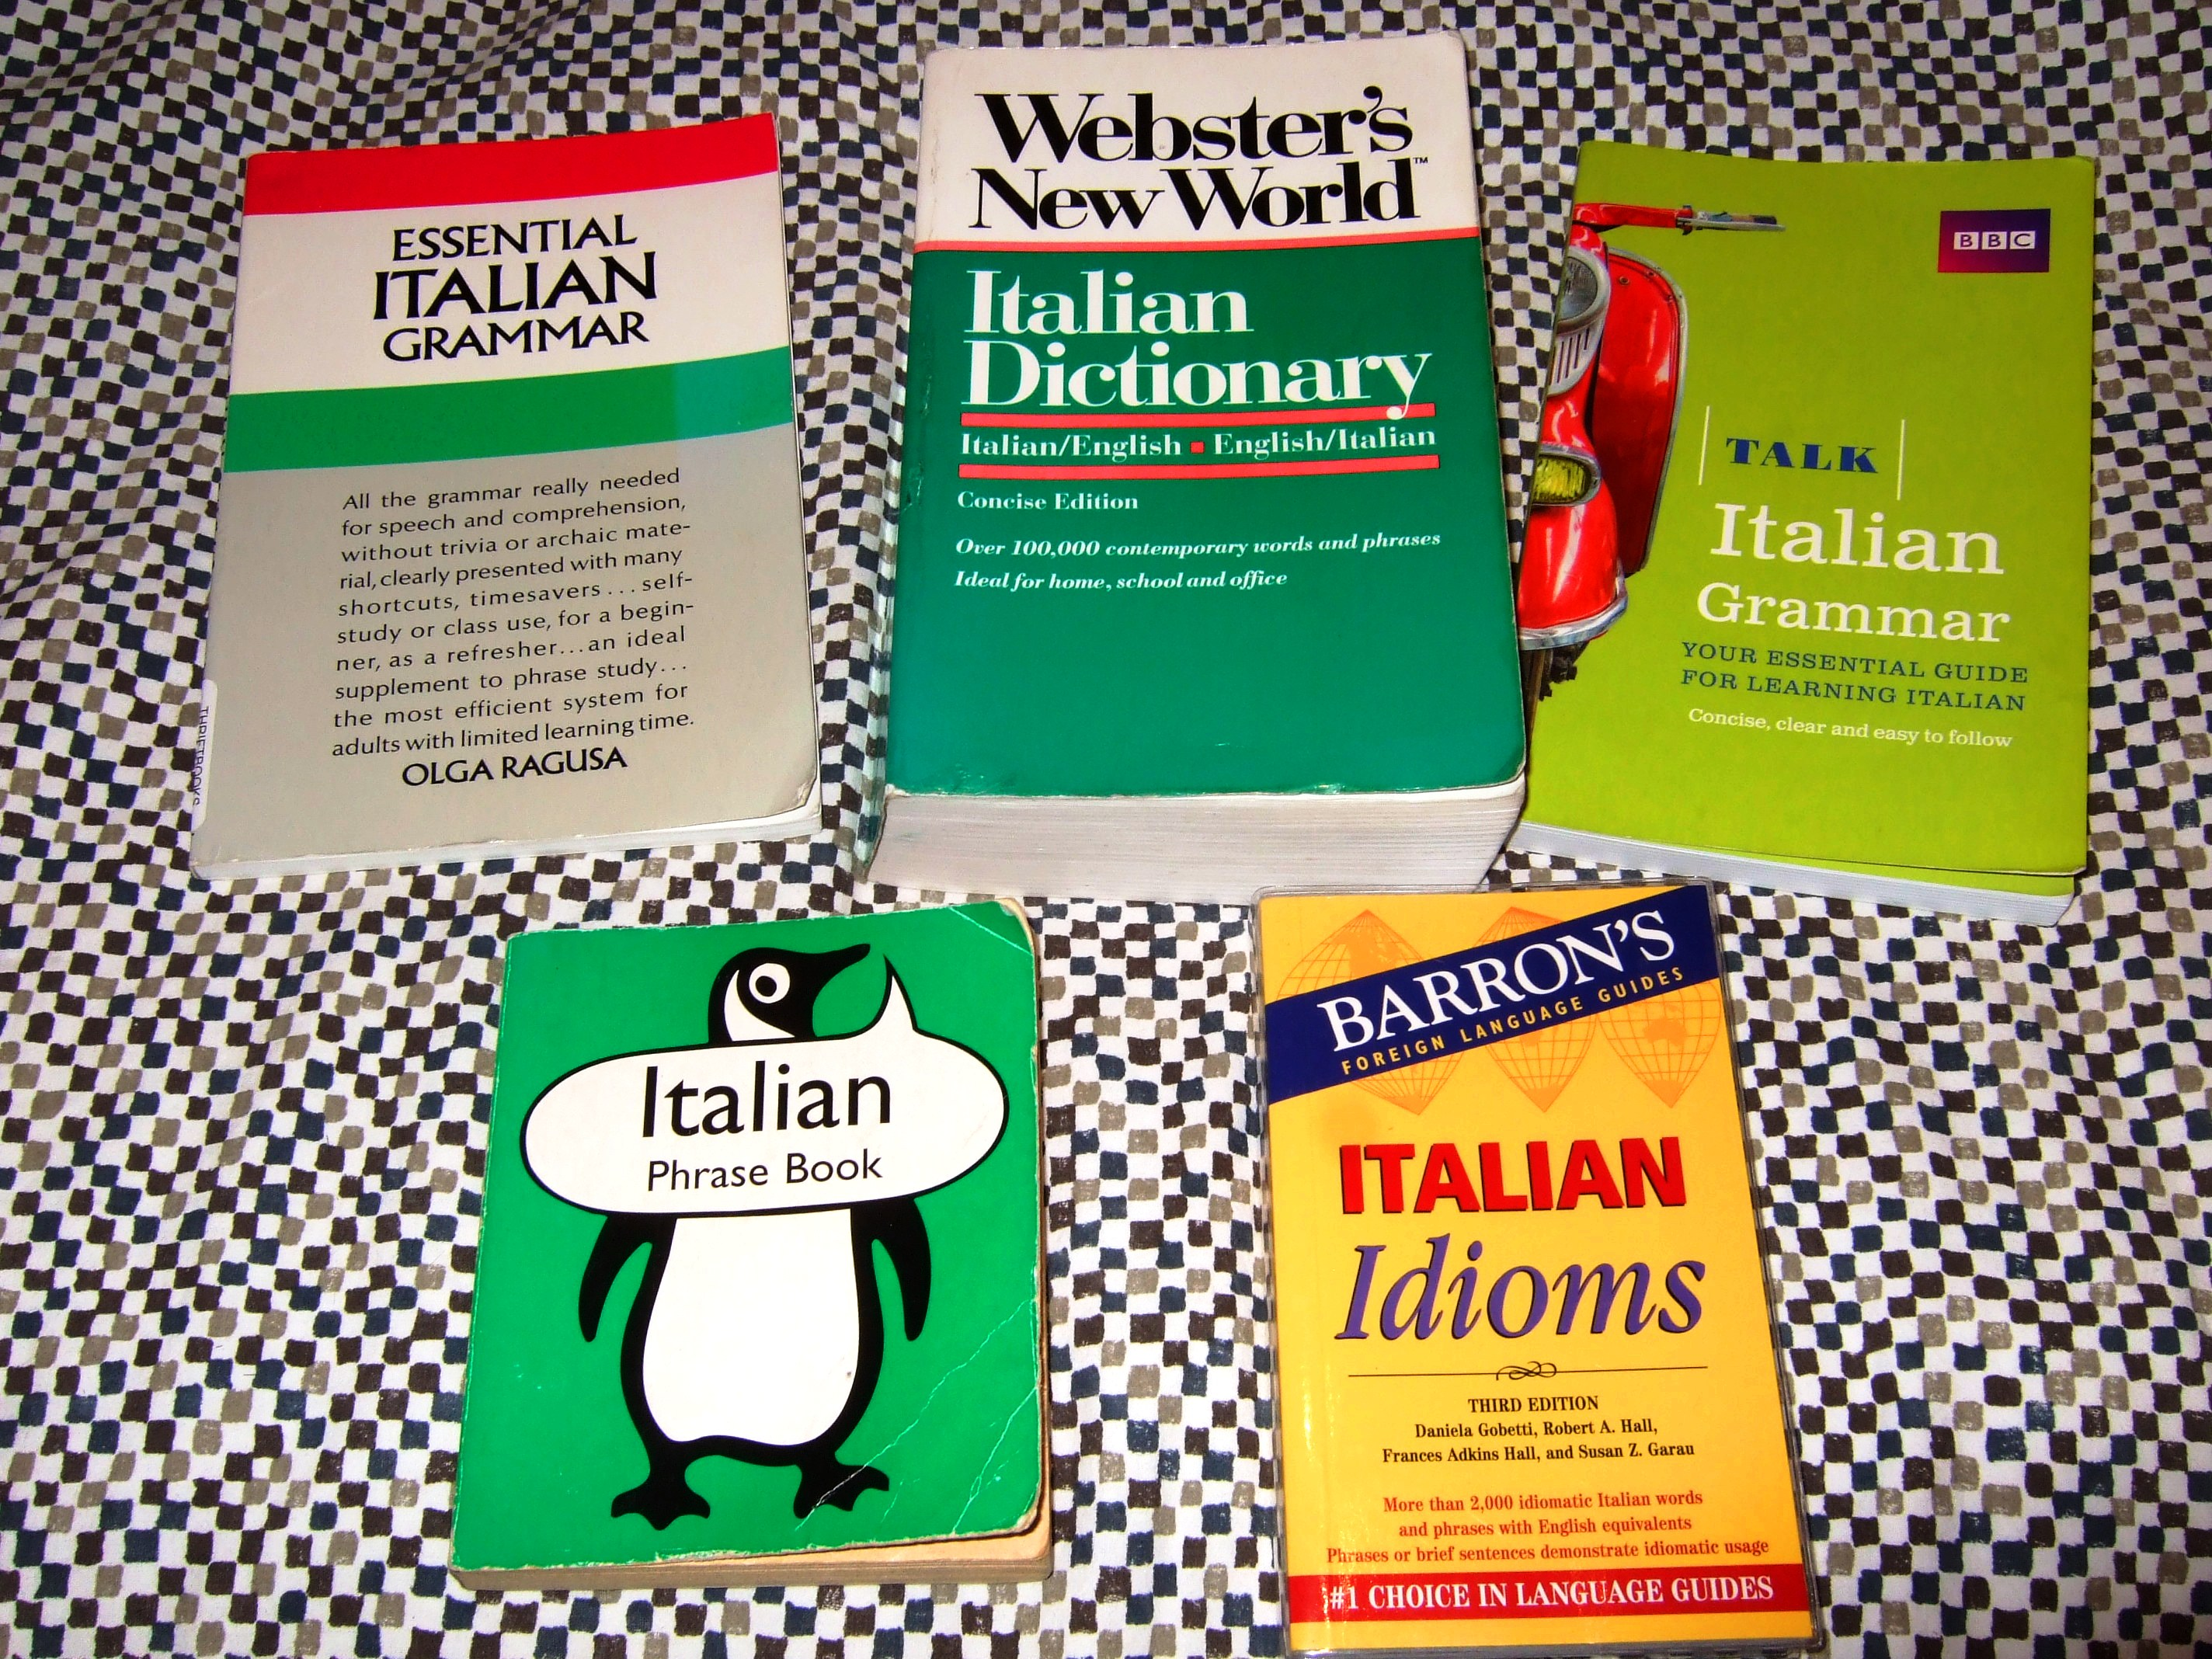 italian an essential guide to italian language learning